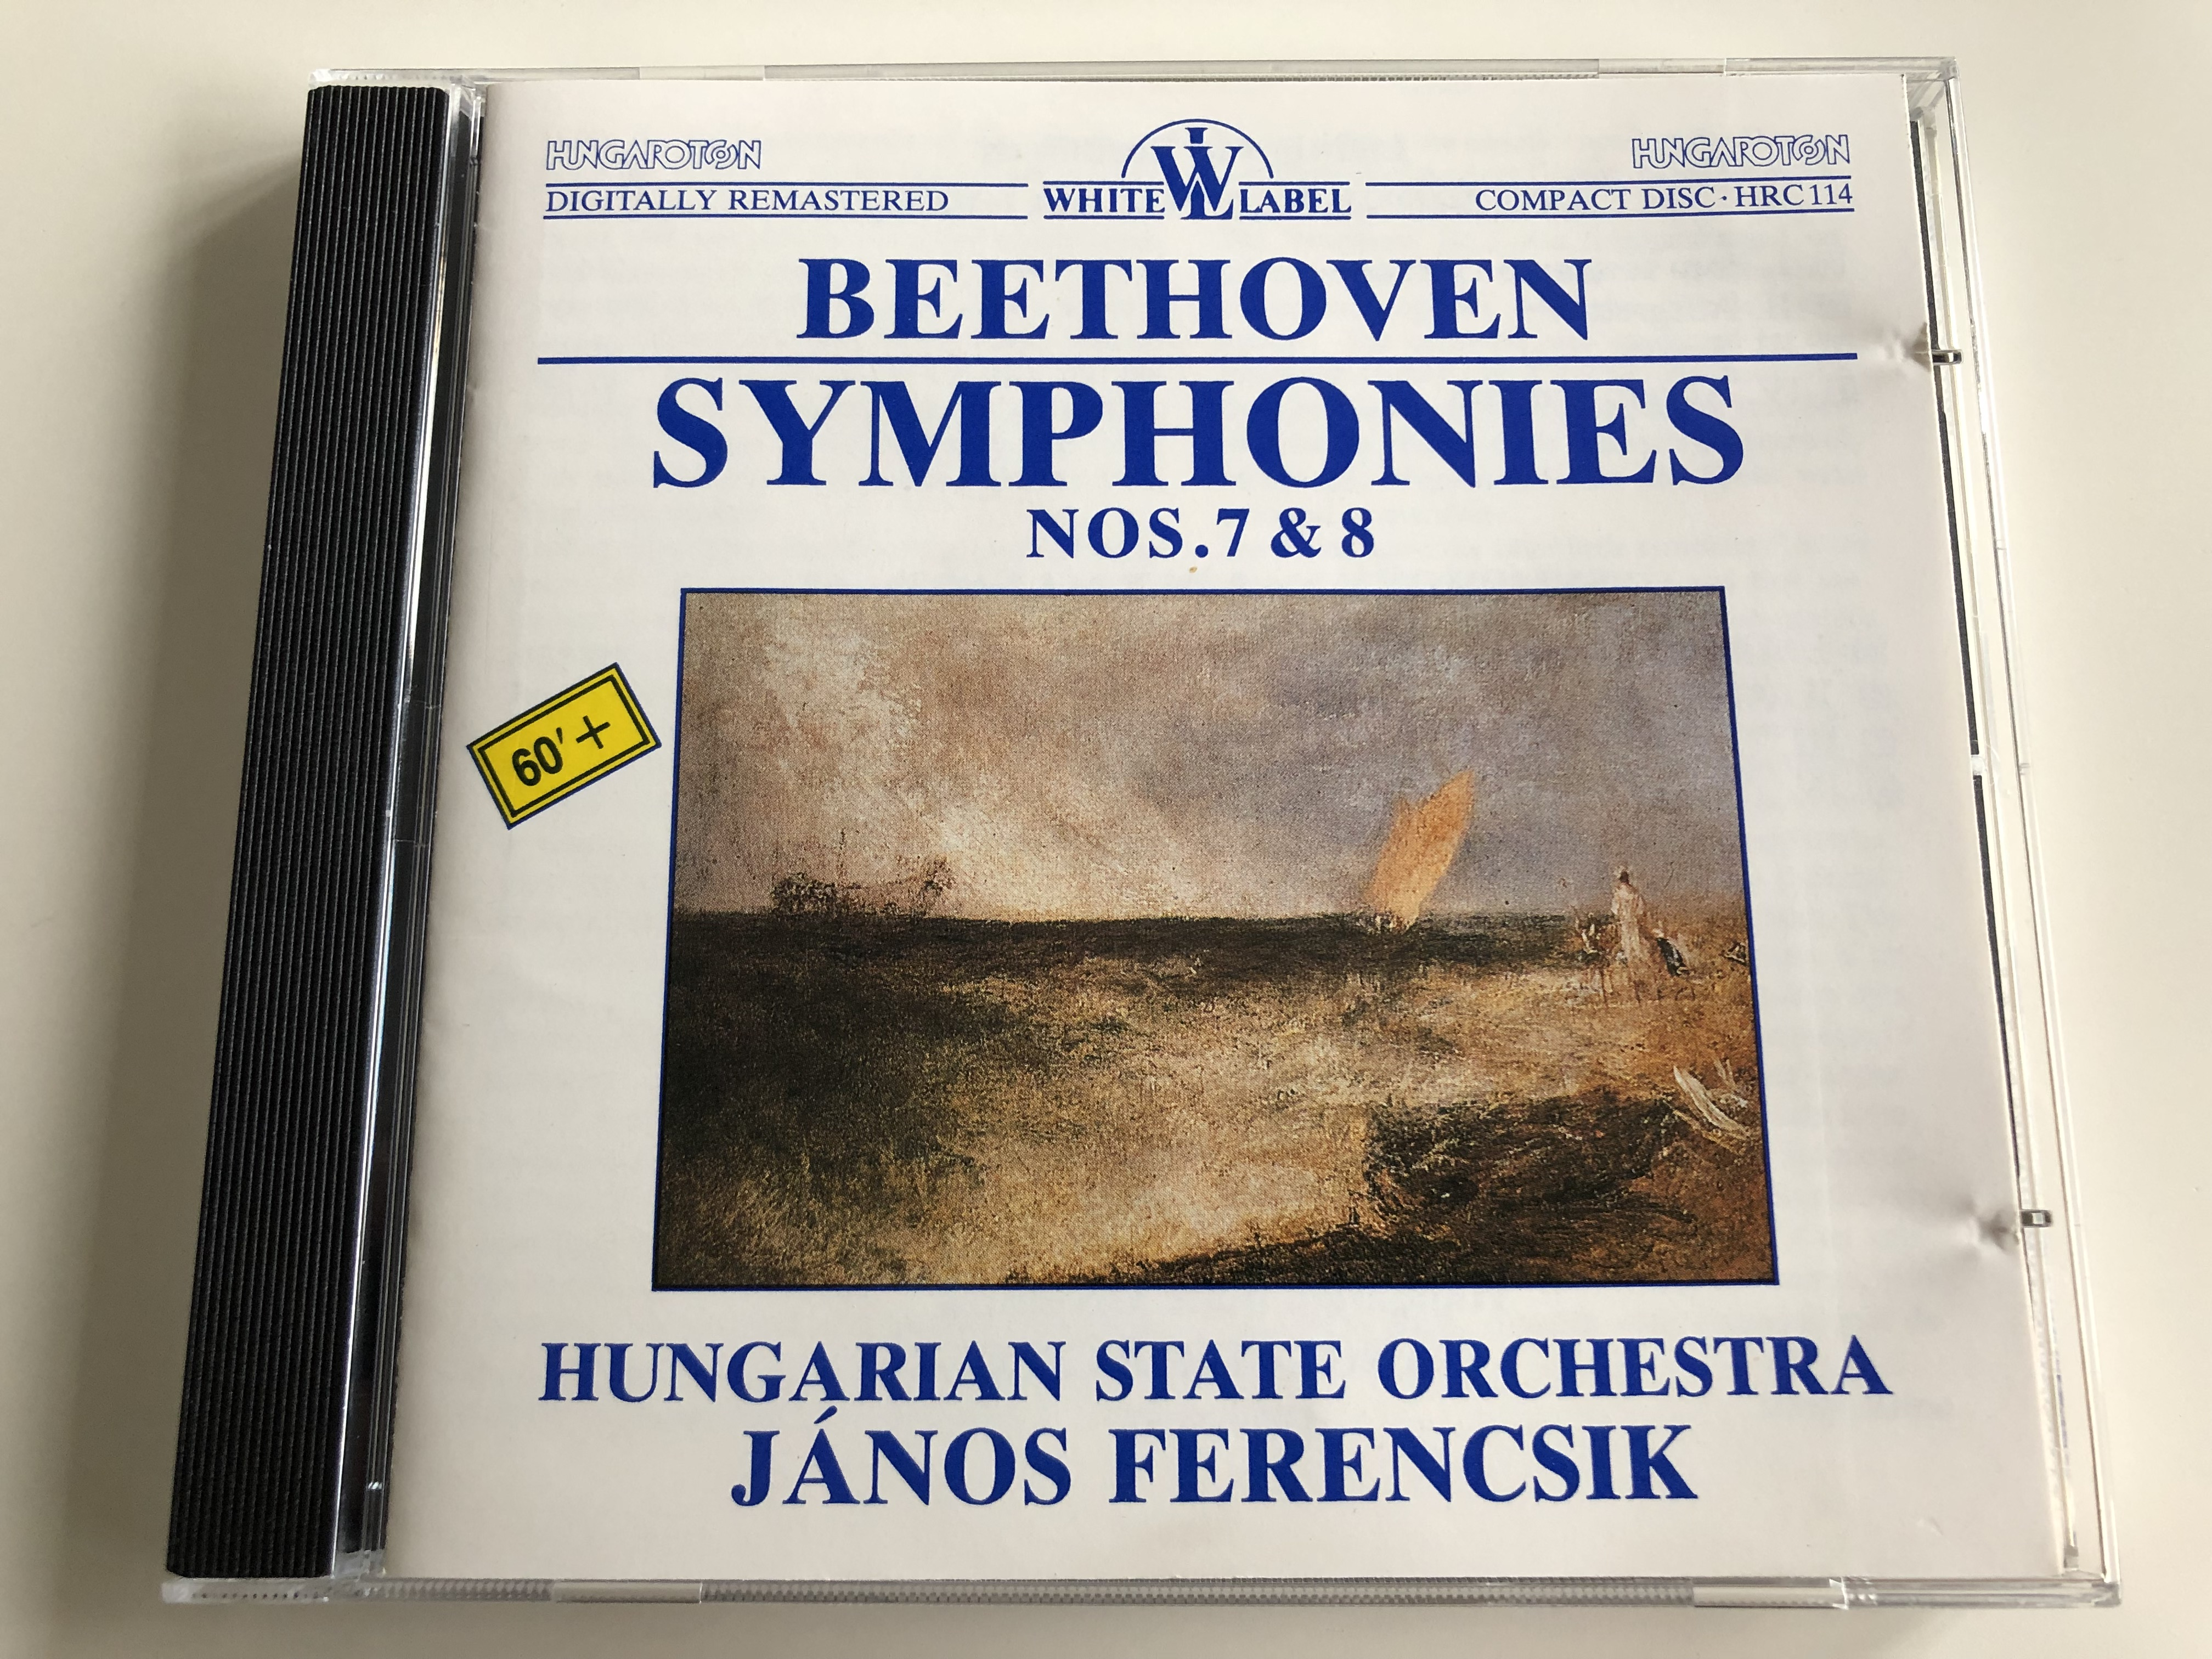 beethoven-symphonies-nos.-7-8-audio-cd-1998-hungarian-state-orchestra-conducted-by-j-nos-ferencsik-hungaroton-white-label-hrc-114-1-.jpg